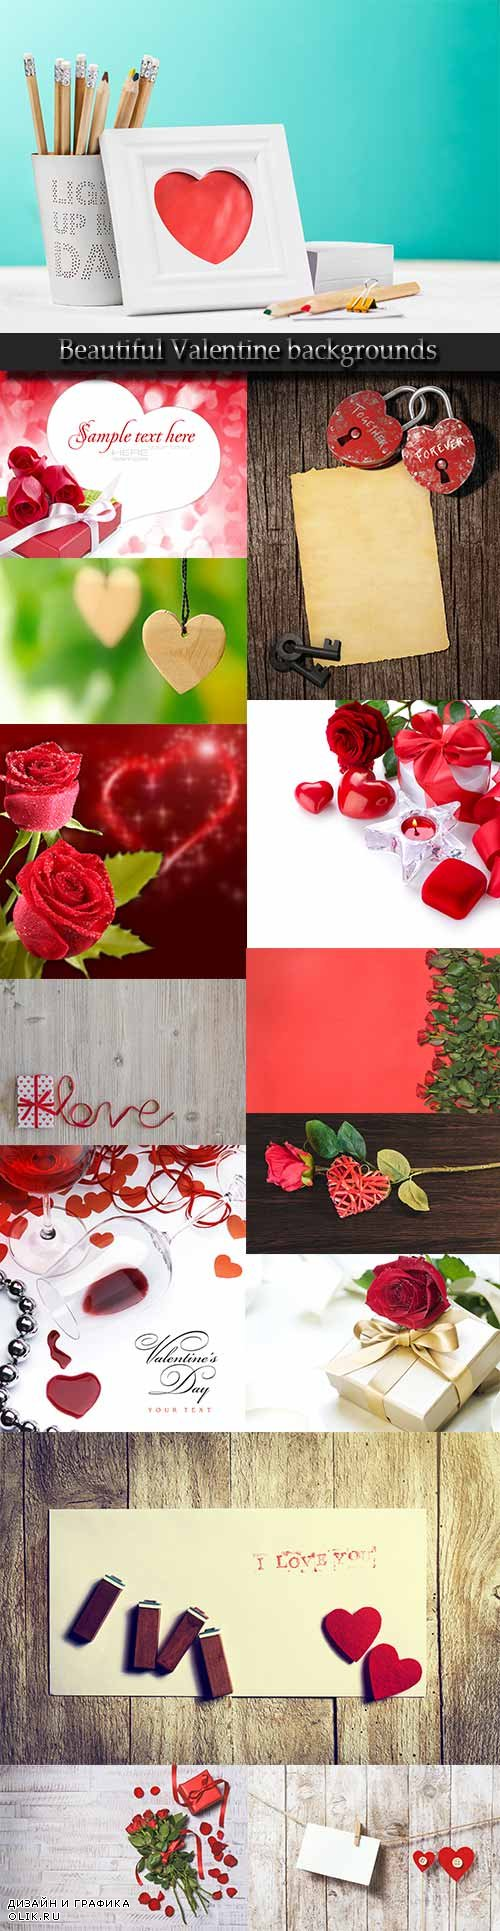 Beautiful Valentine backgrounds